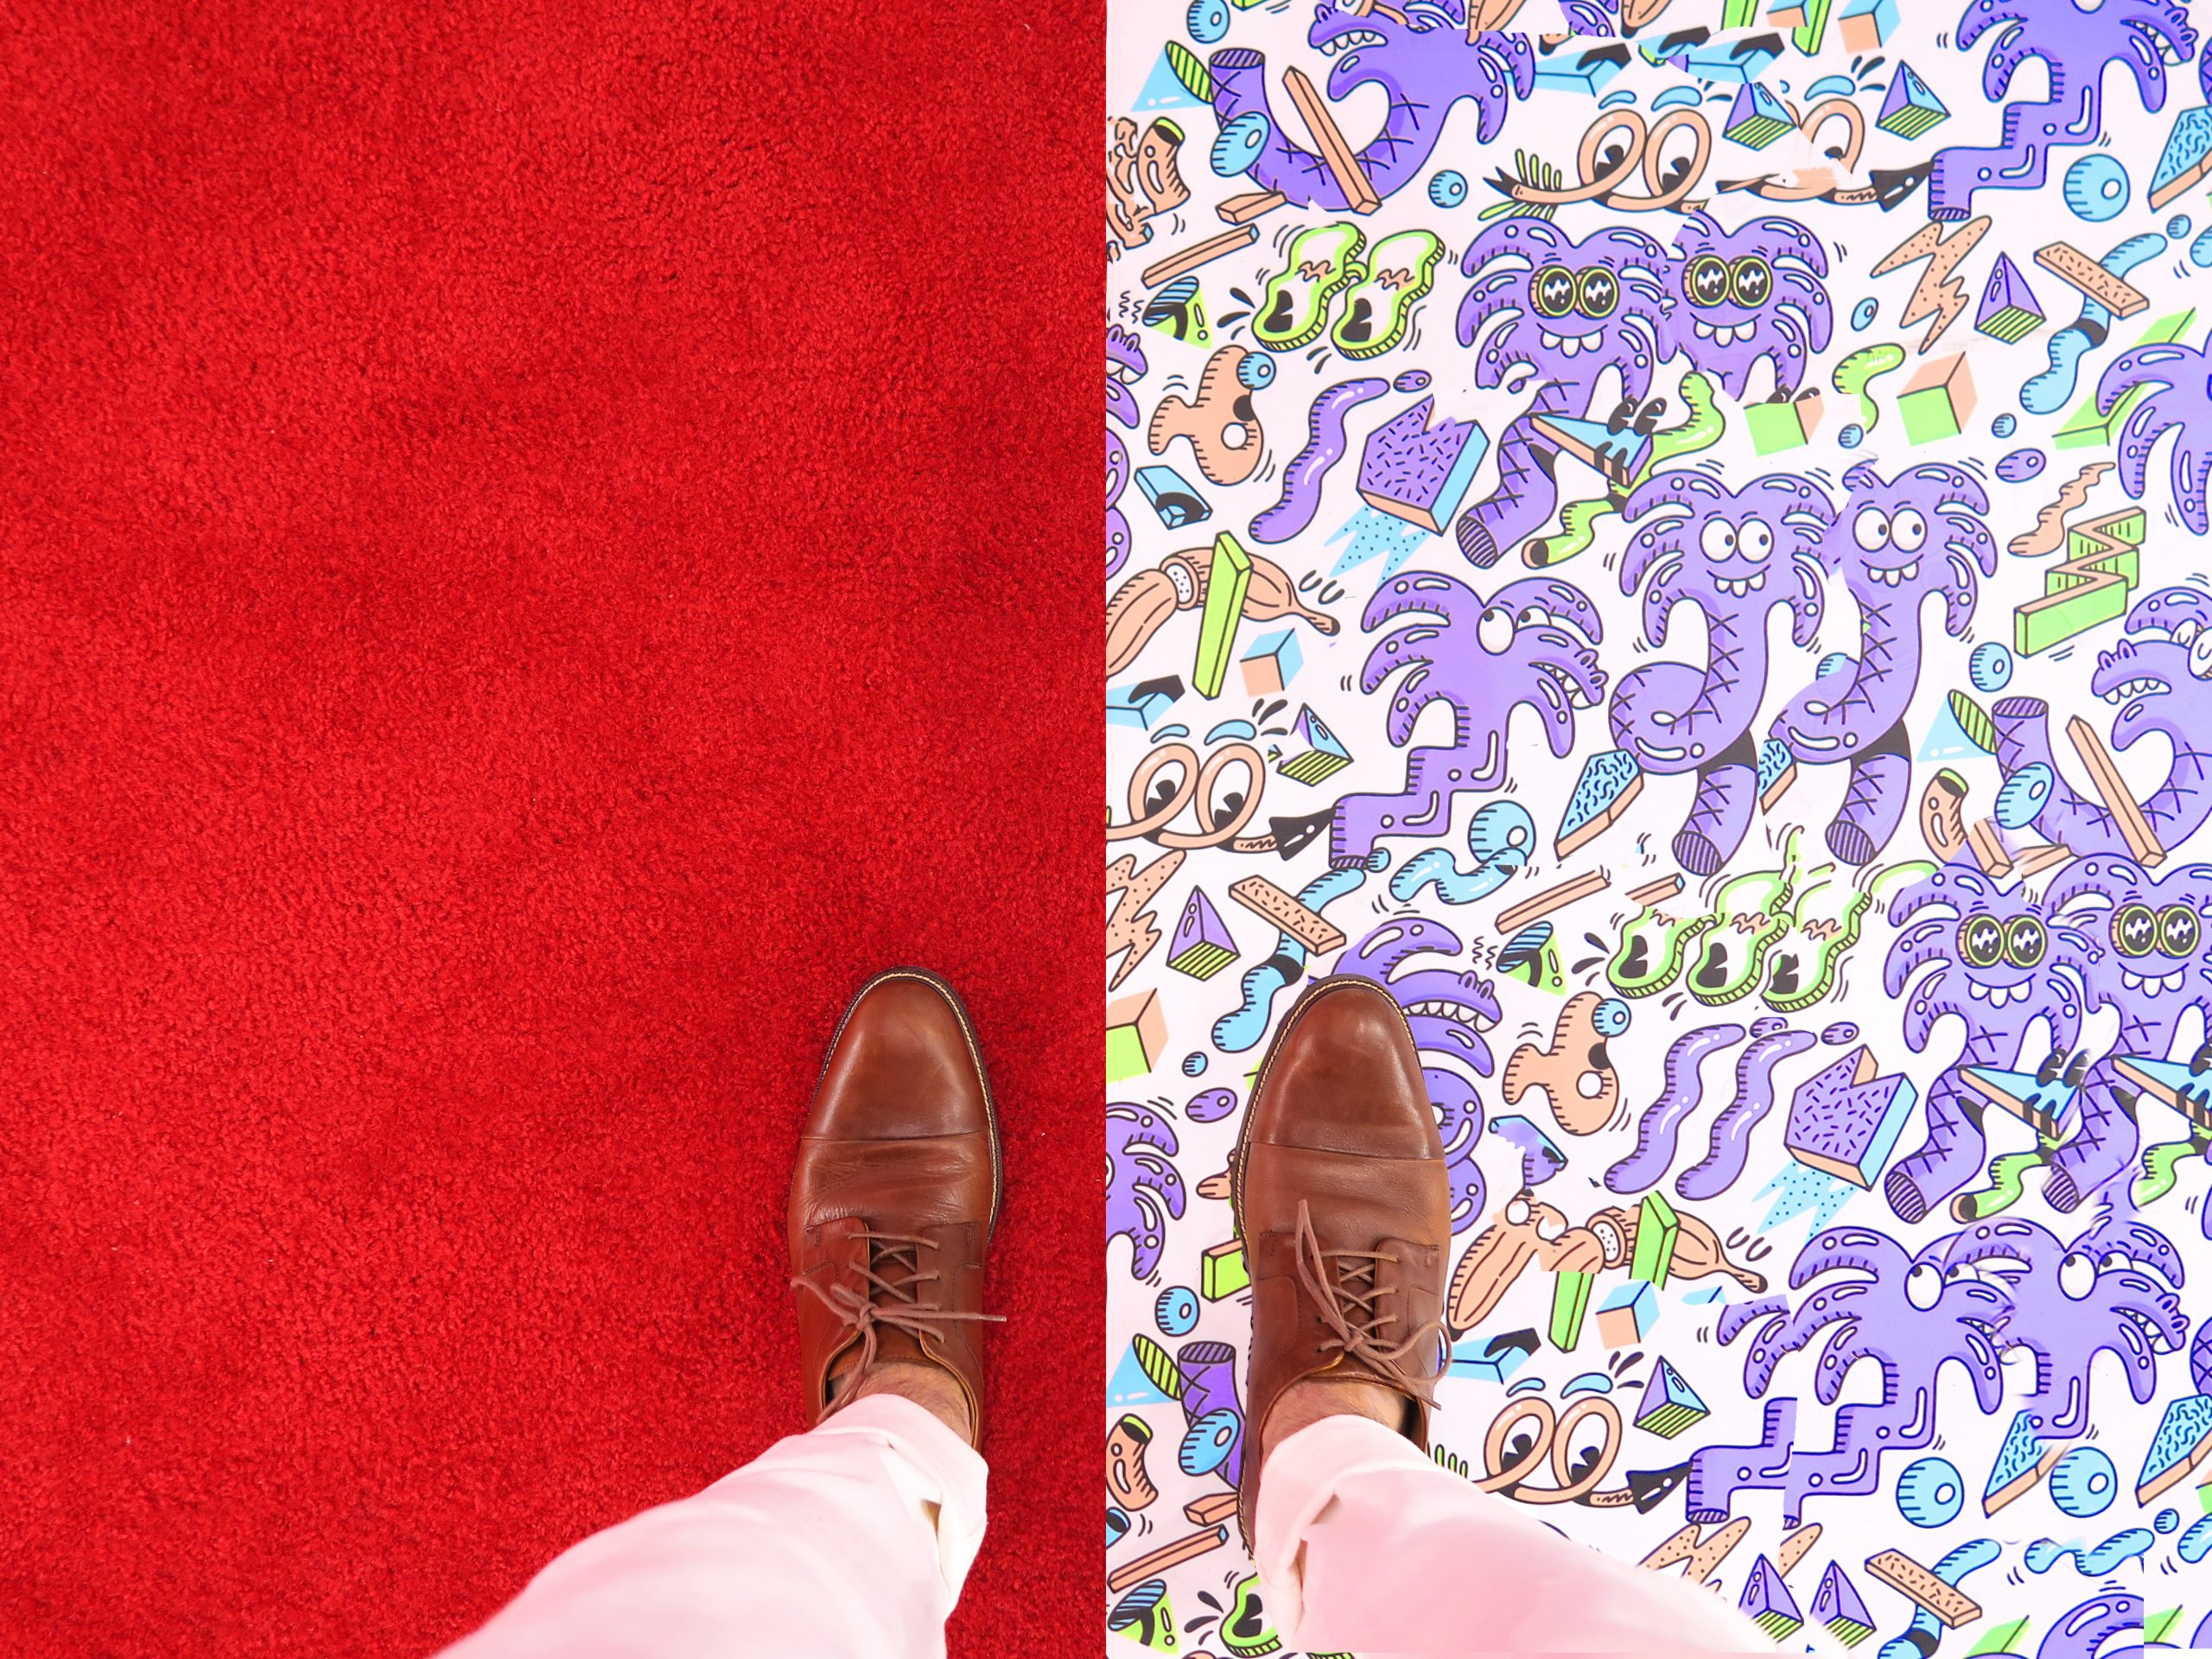 leather shows on a red carpet and carpet with elephants on it